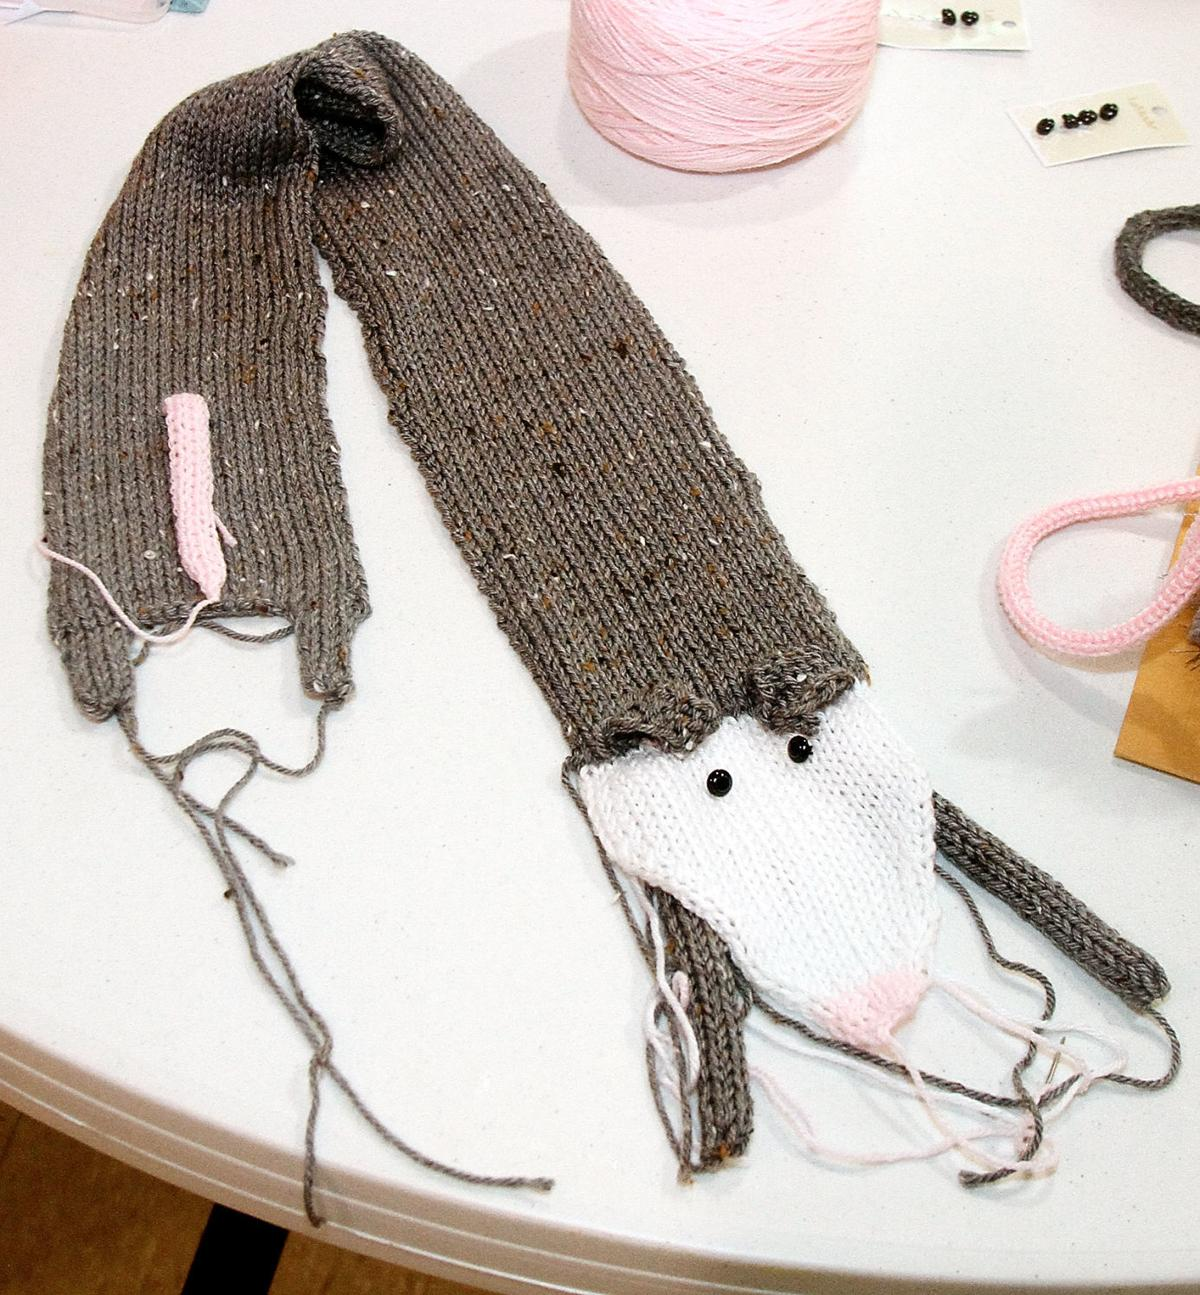 The Tennessee Valley Machine Knitters are knitting opossum scarves and purses